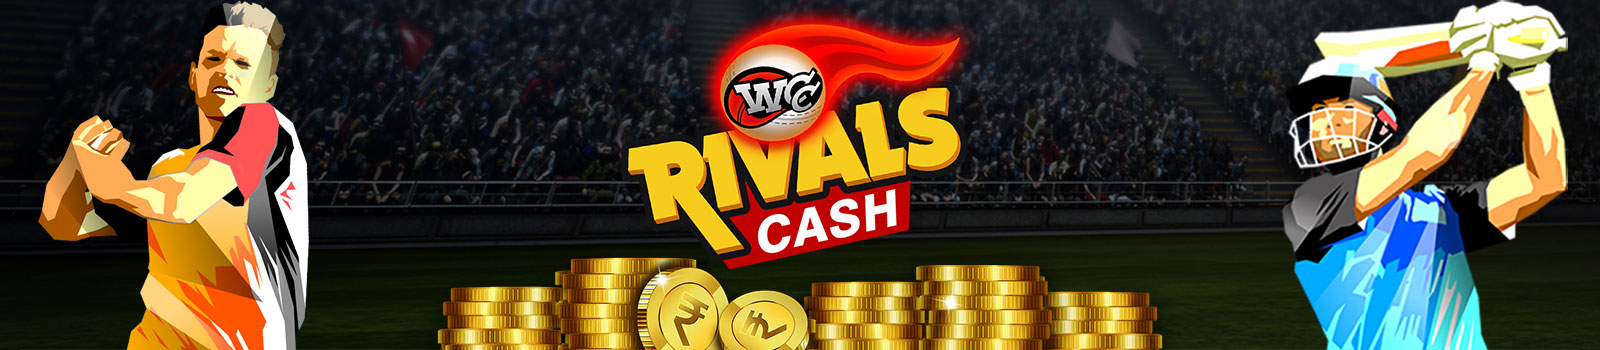 WCC Rivals Cash Tournaments - win real money through mobile cricket gaming!